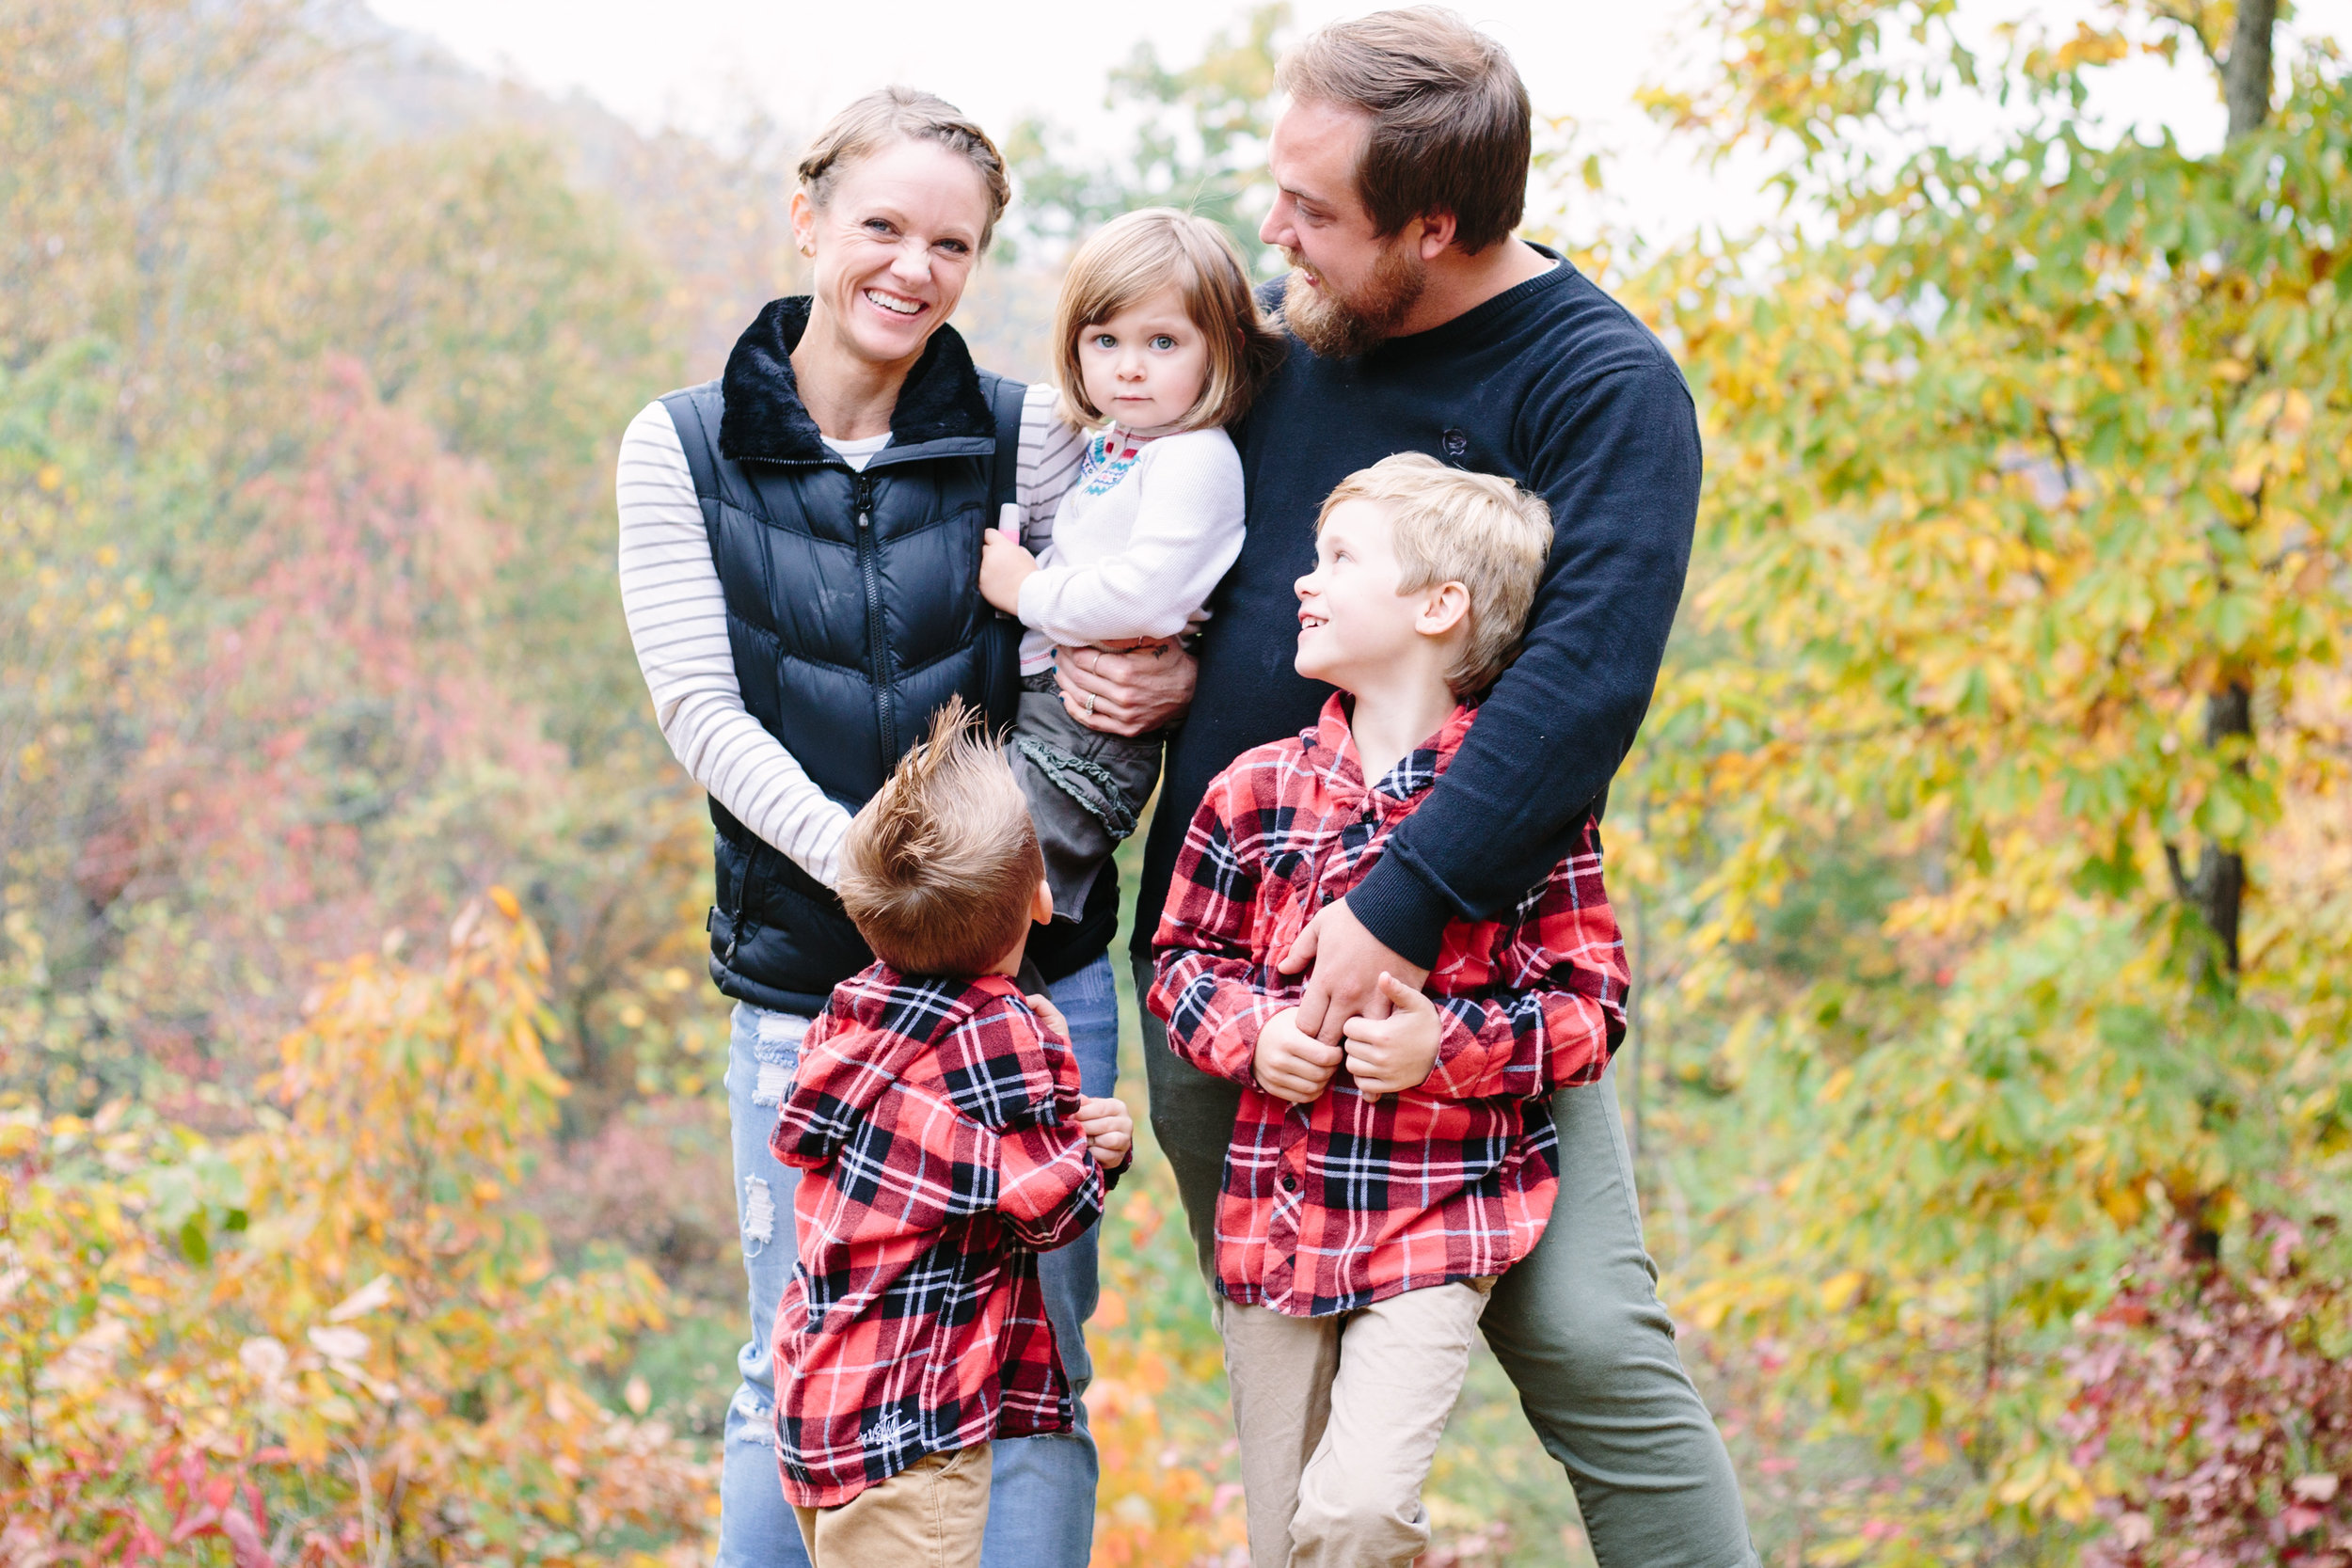 family, poses, outdoor, Knoxville, ideas, outfits, large, country, field, inspiration, funny, with toddler, color scheme, creative, siblings, fall, unique, natural, natural light, photoshoot, colorful, vibrant, fall, mountains, Gatlinburg, Tennessee, large, extended, mountains